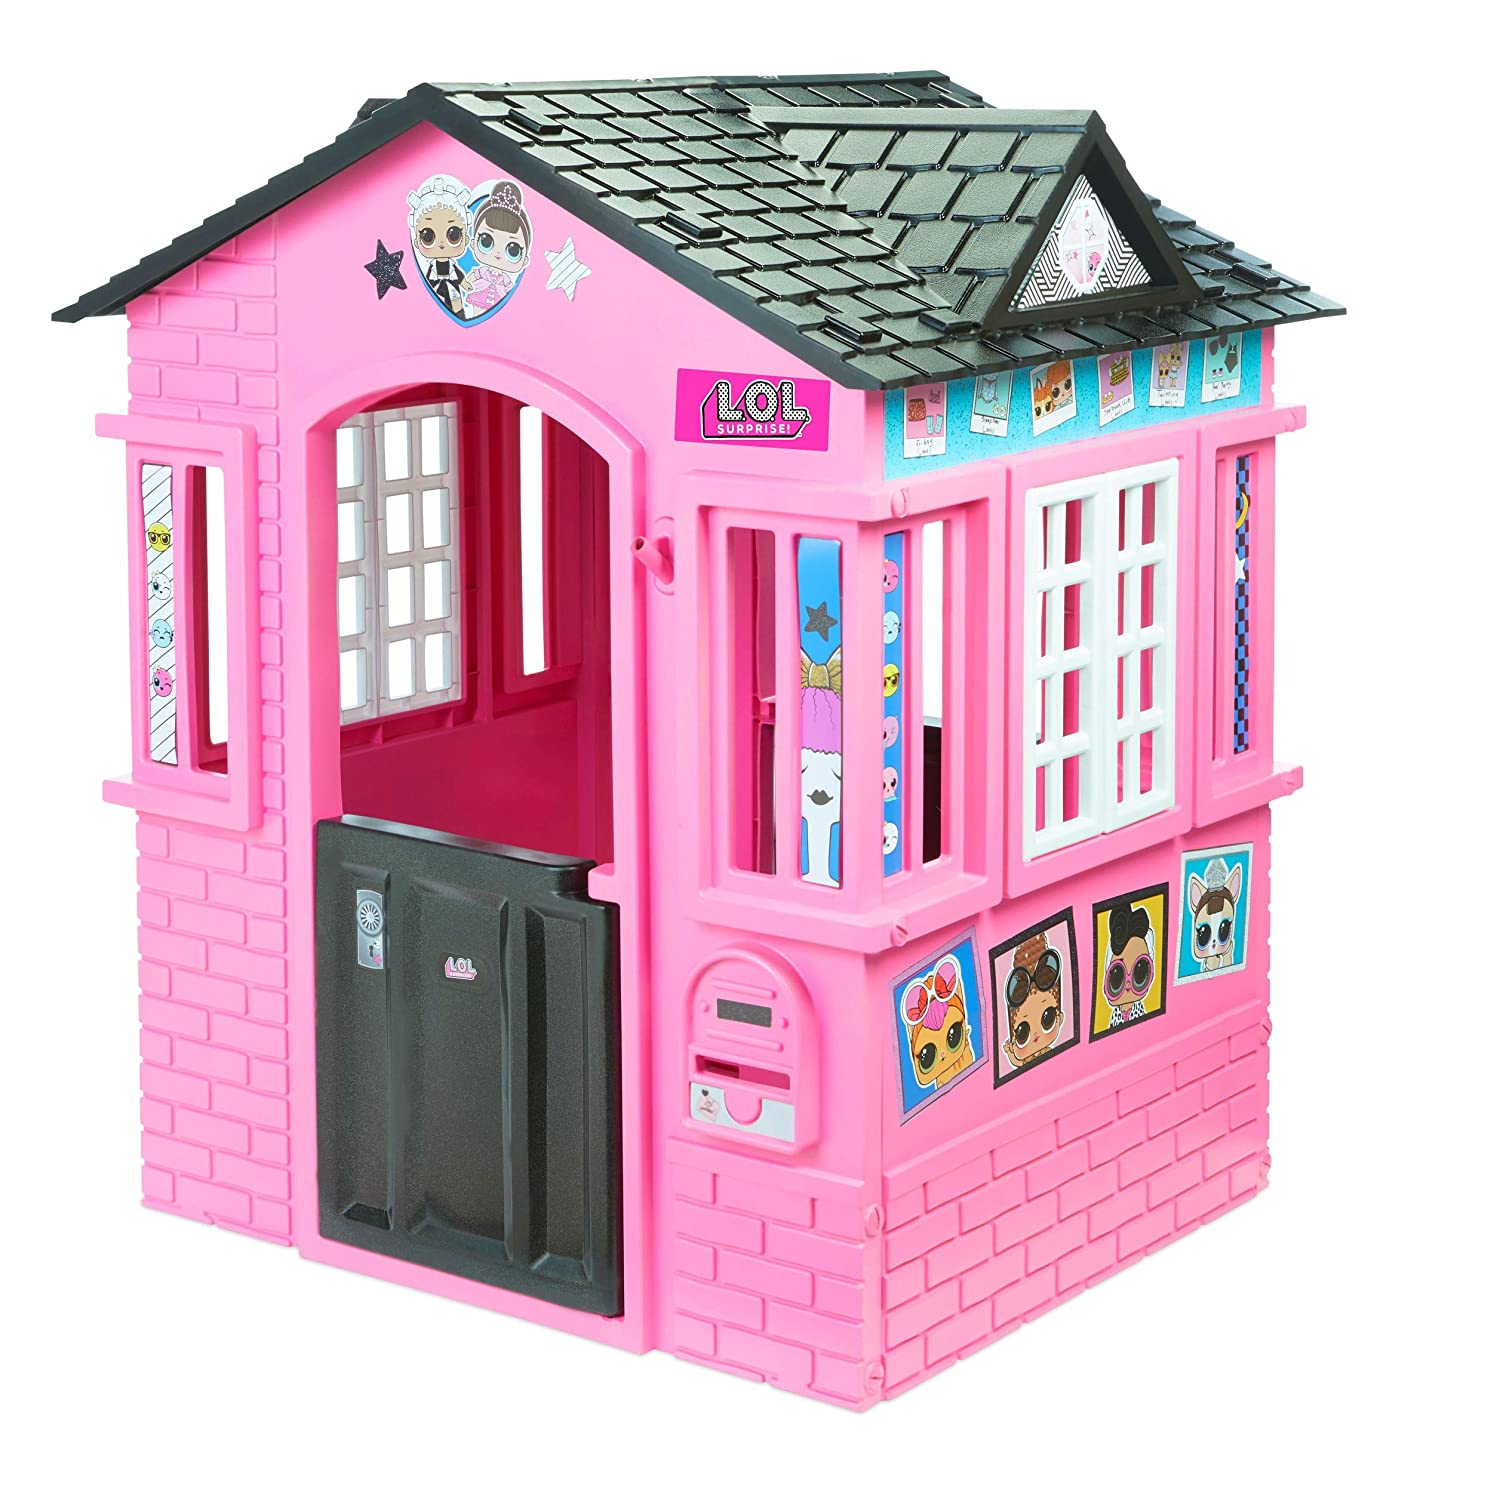 c0b681ad882e1 Amazon.com  L.O.L. Surprise! Indoor   Outdoor Cottage Playhouse with ...